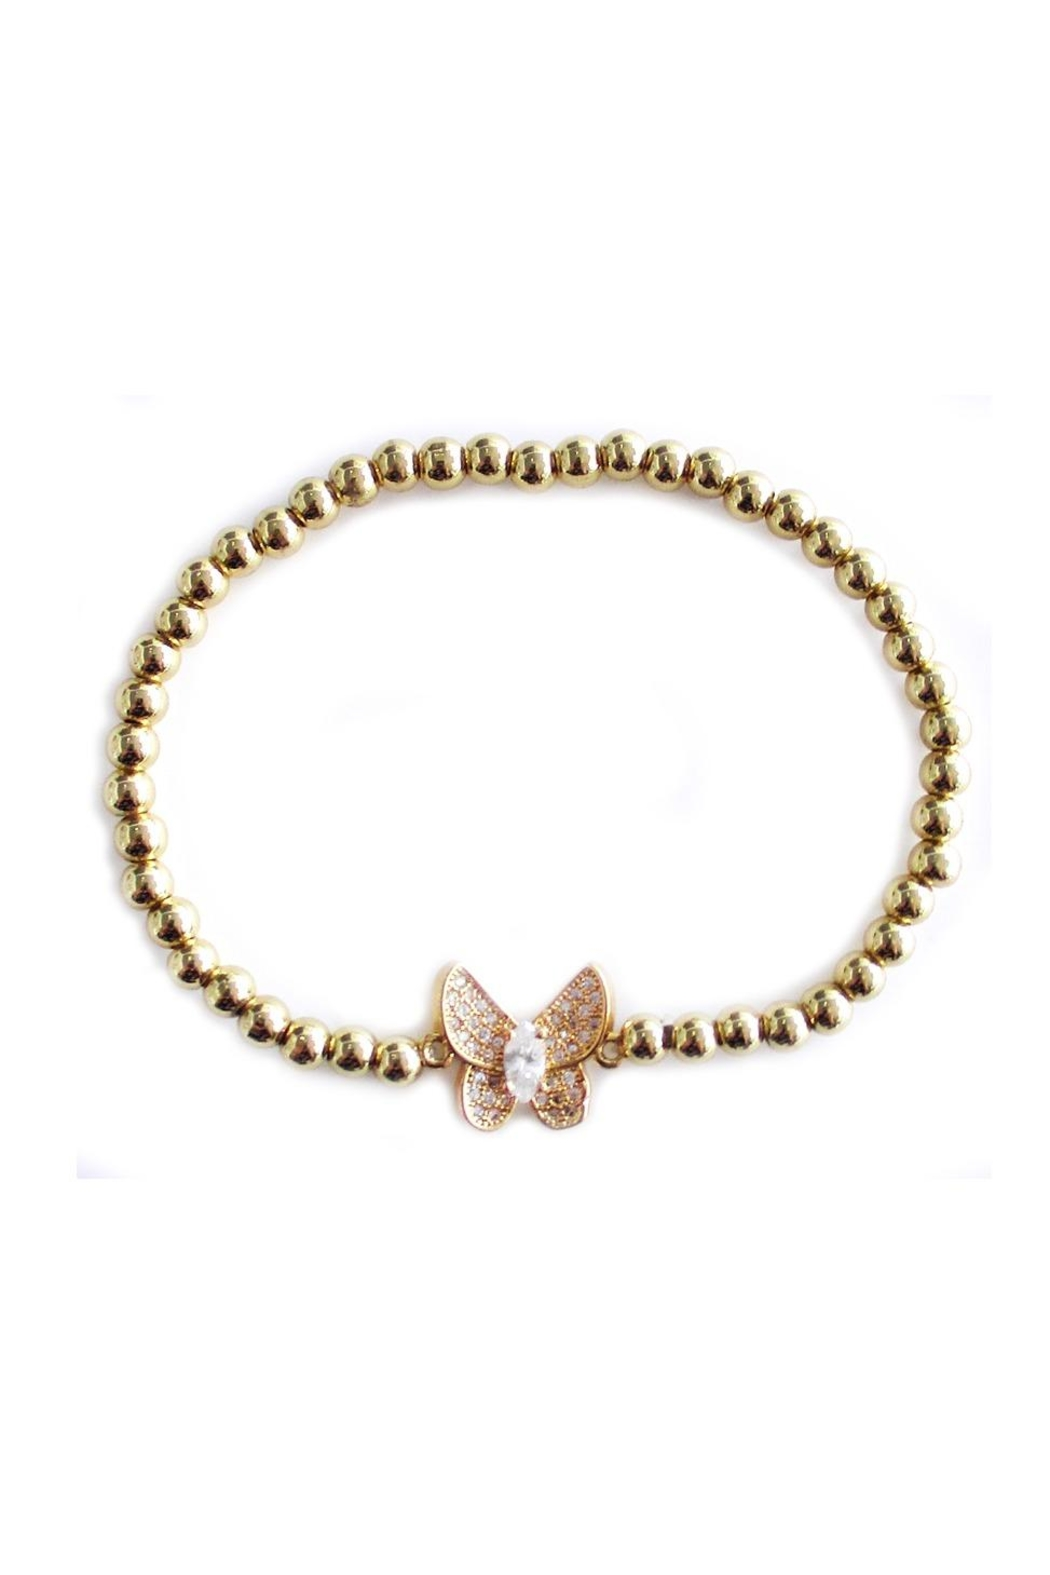 Malia Jewelry Butterfly Golden Bracelet - Main Image